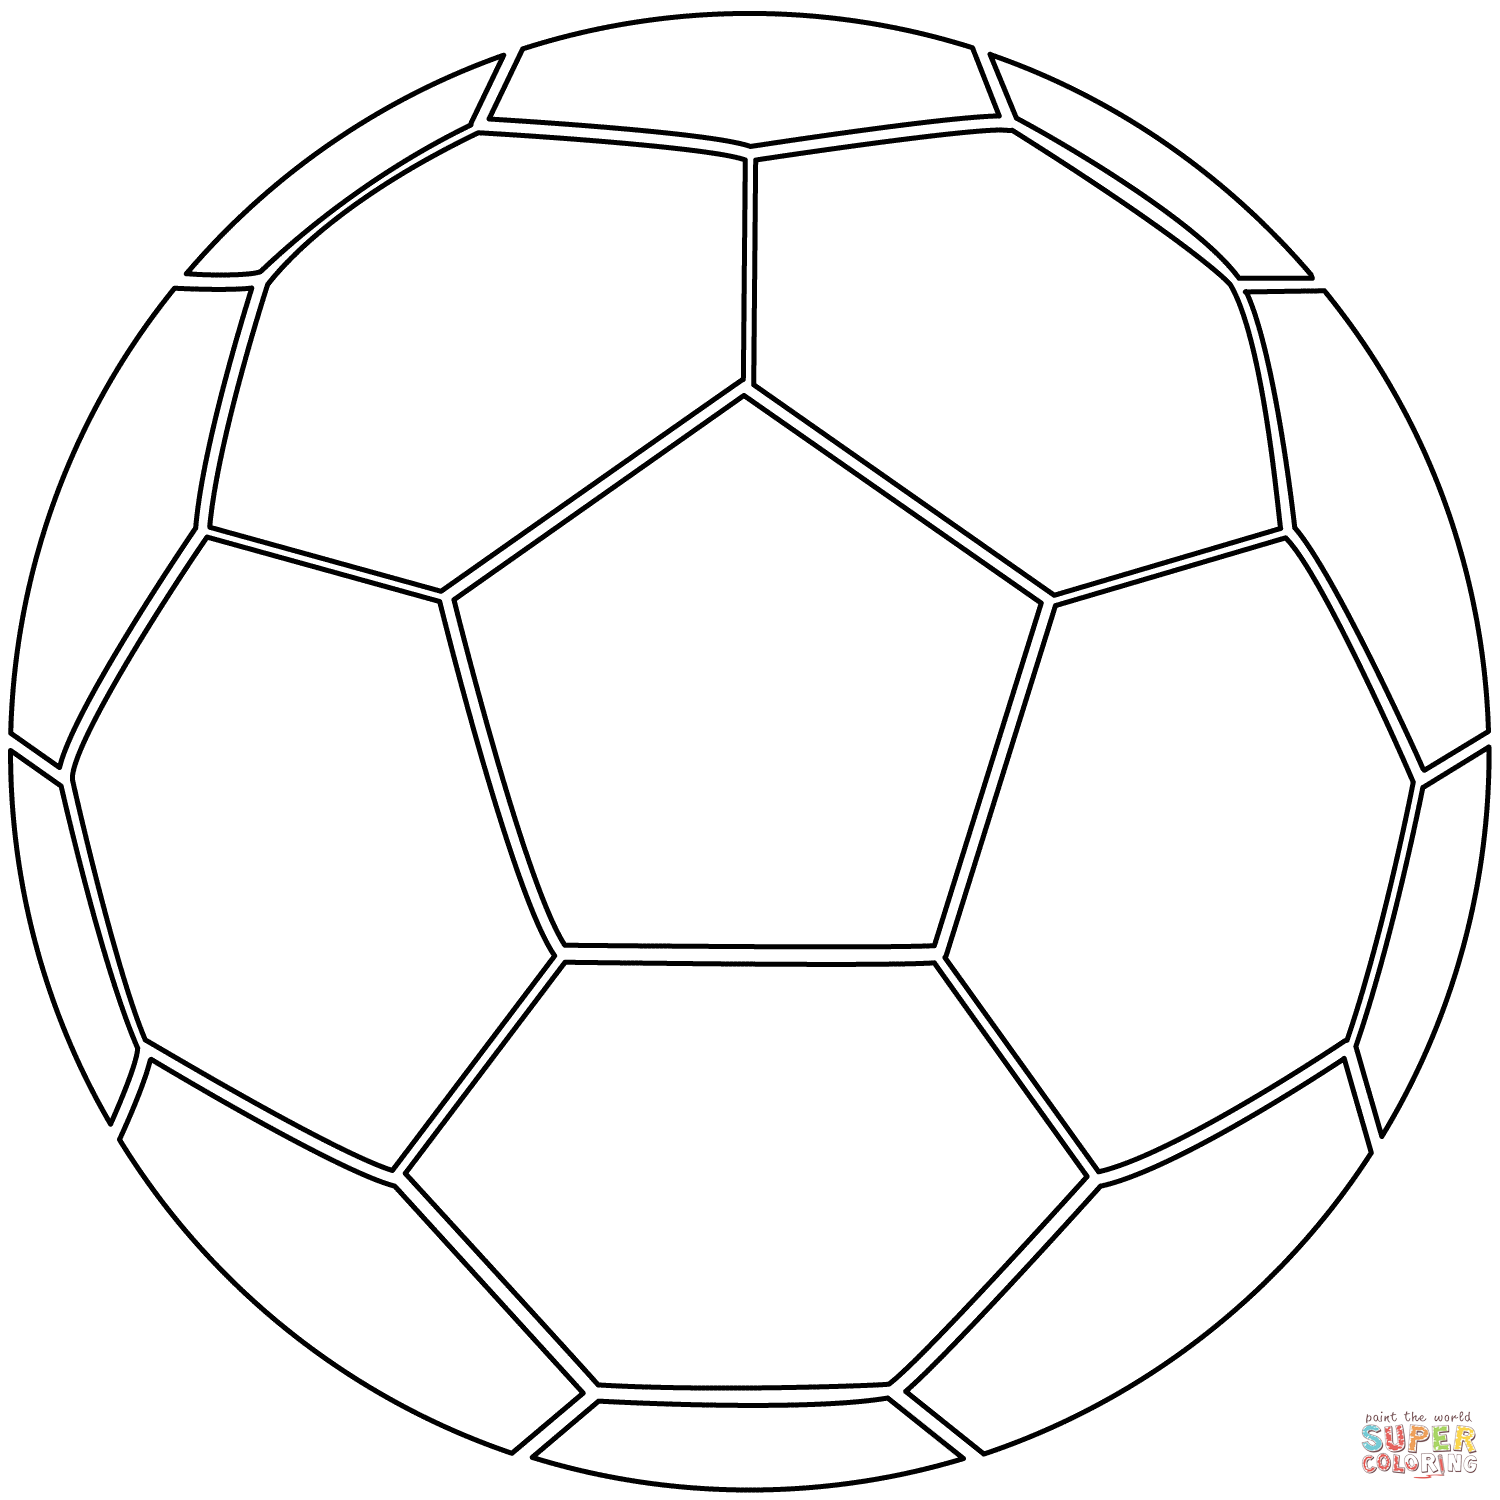 colouring sheet of ball free printable soccer coloring pages for kids of ball sheet colouring